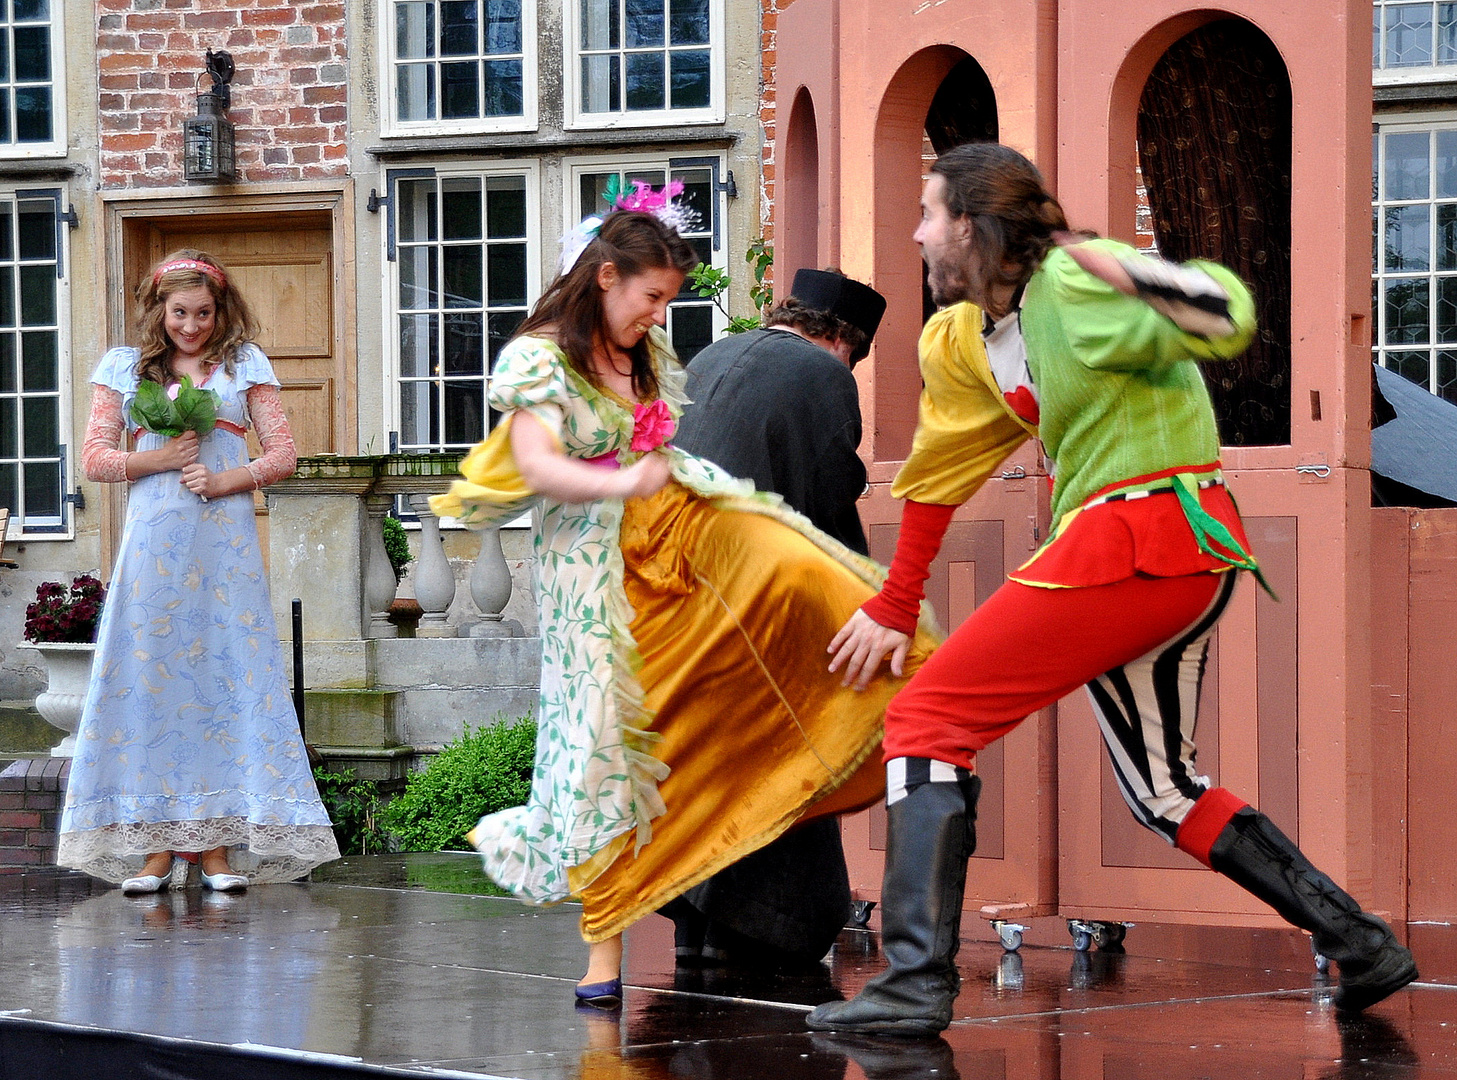 Taming of the Shrew (Shakespeare)